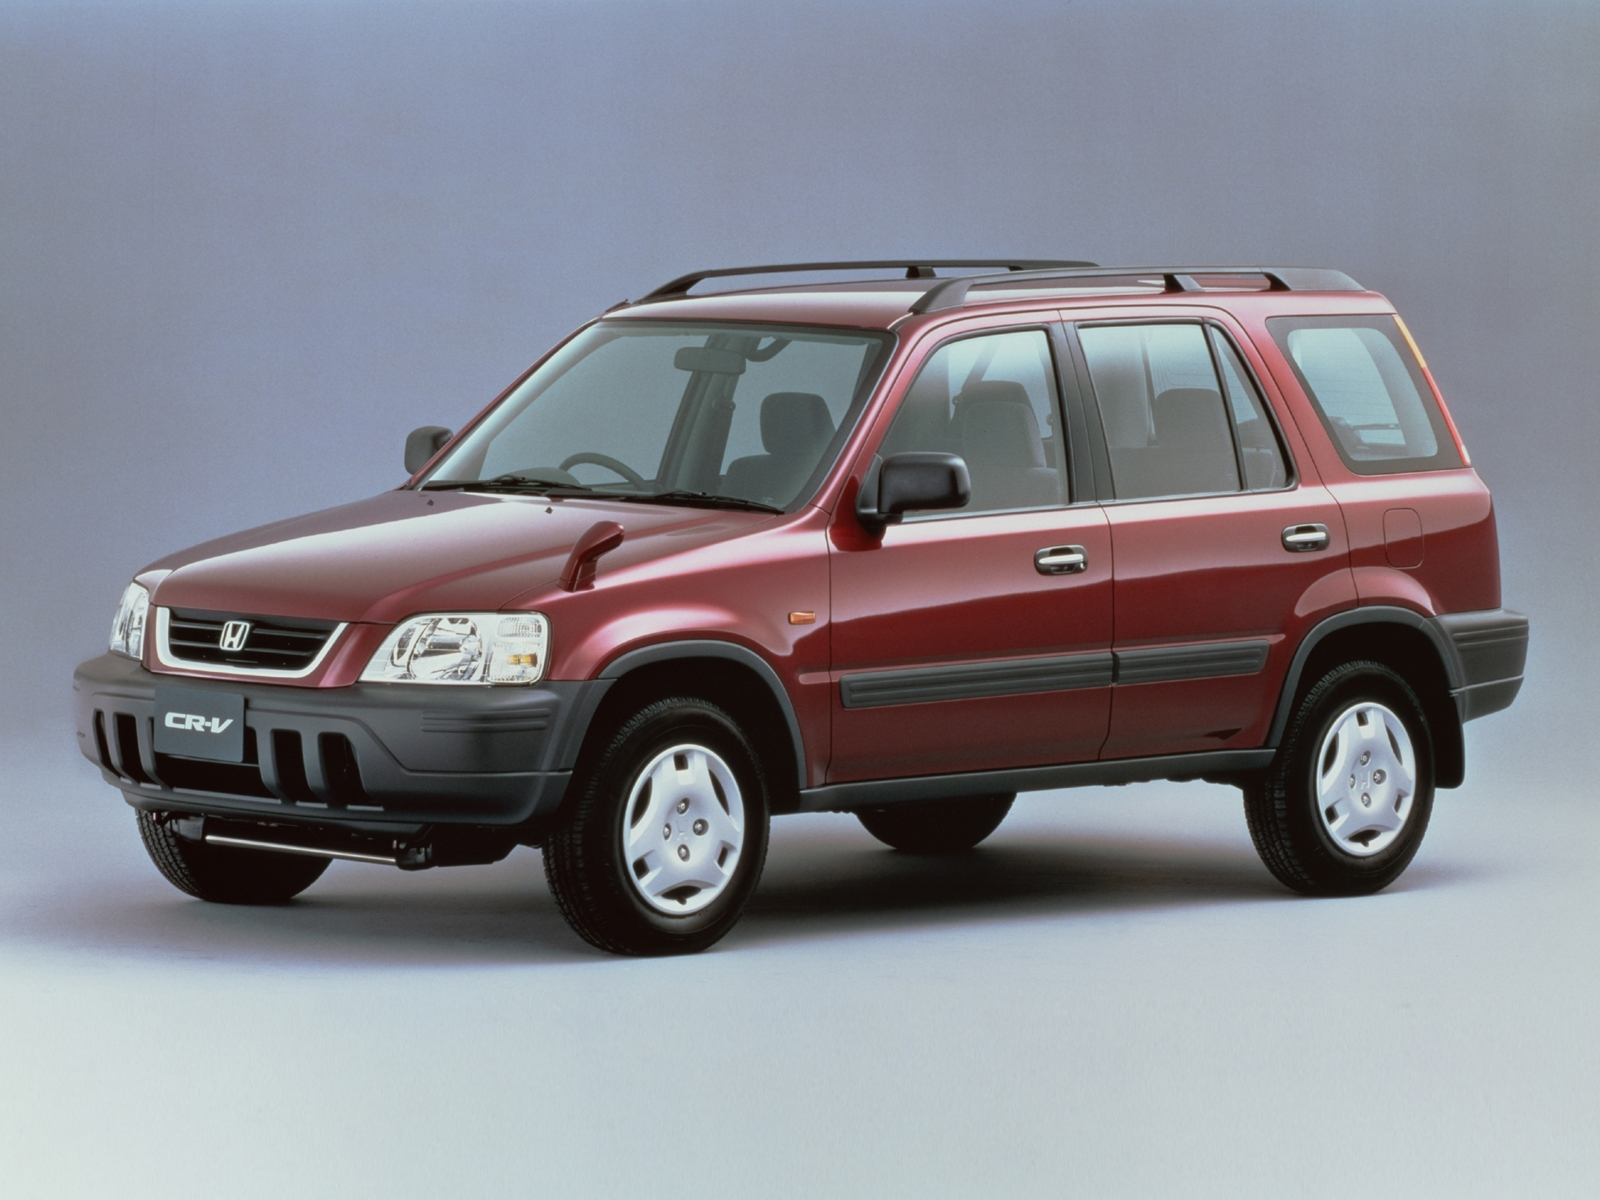 Honda Crv 1995 Review Amazing Pictures And Images Look